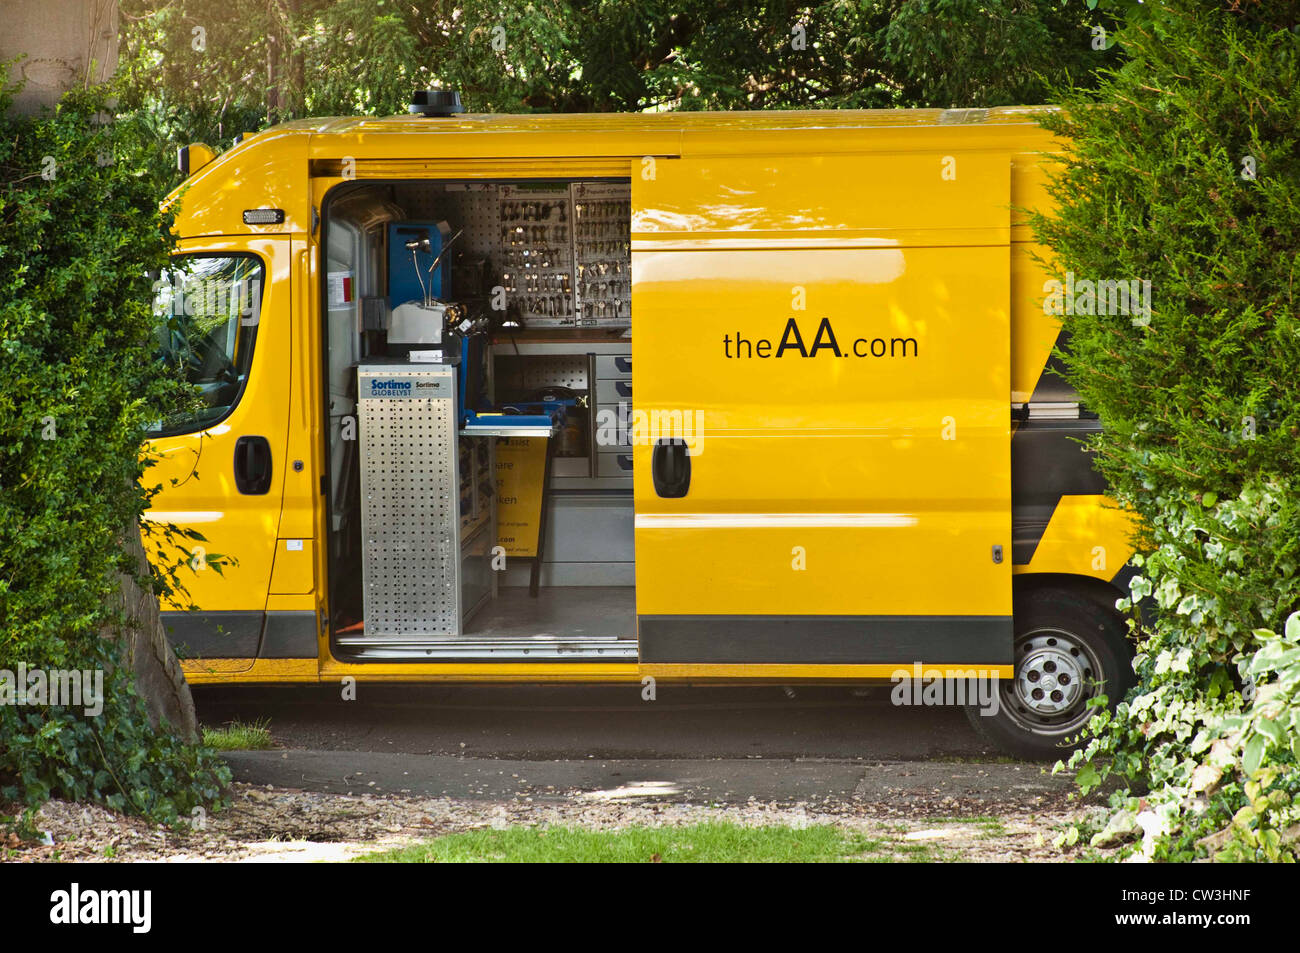 An AA van converted to provide a  mobile car key cutting service.  Shown parked outside a house. UK. - Stock Image